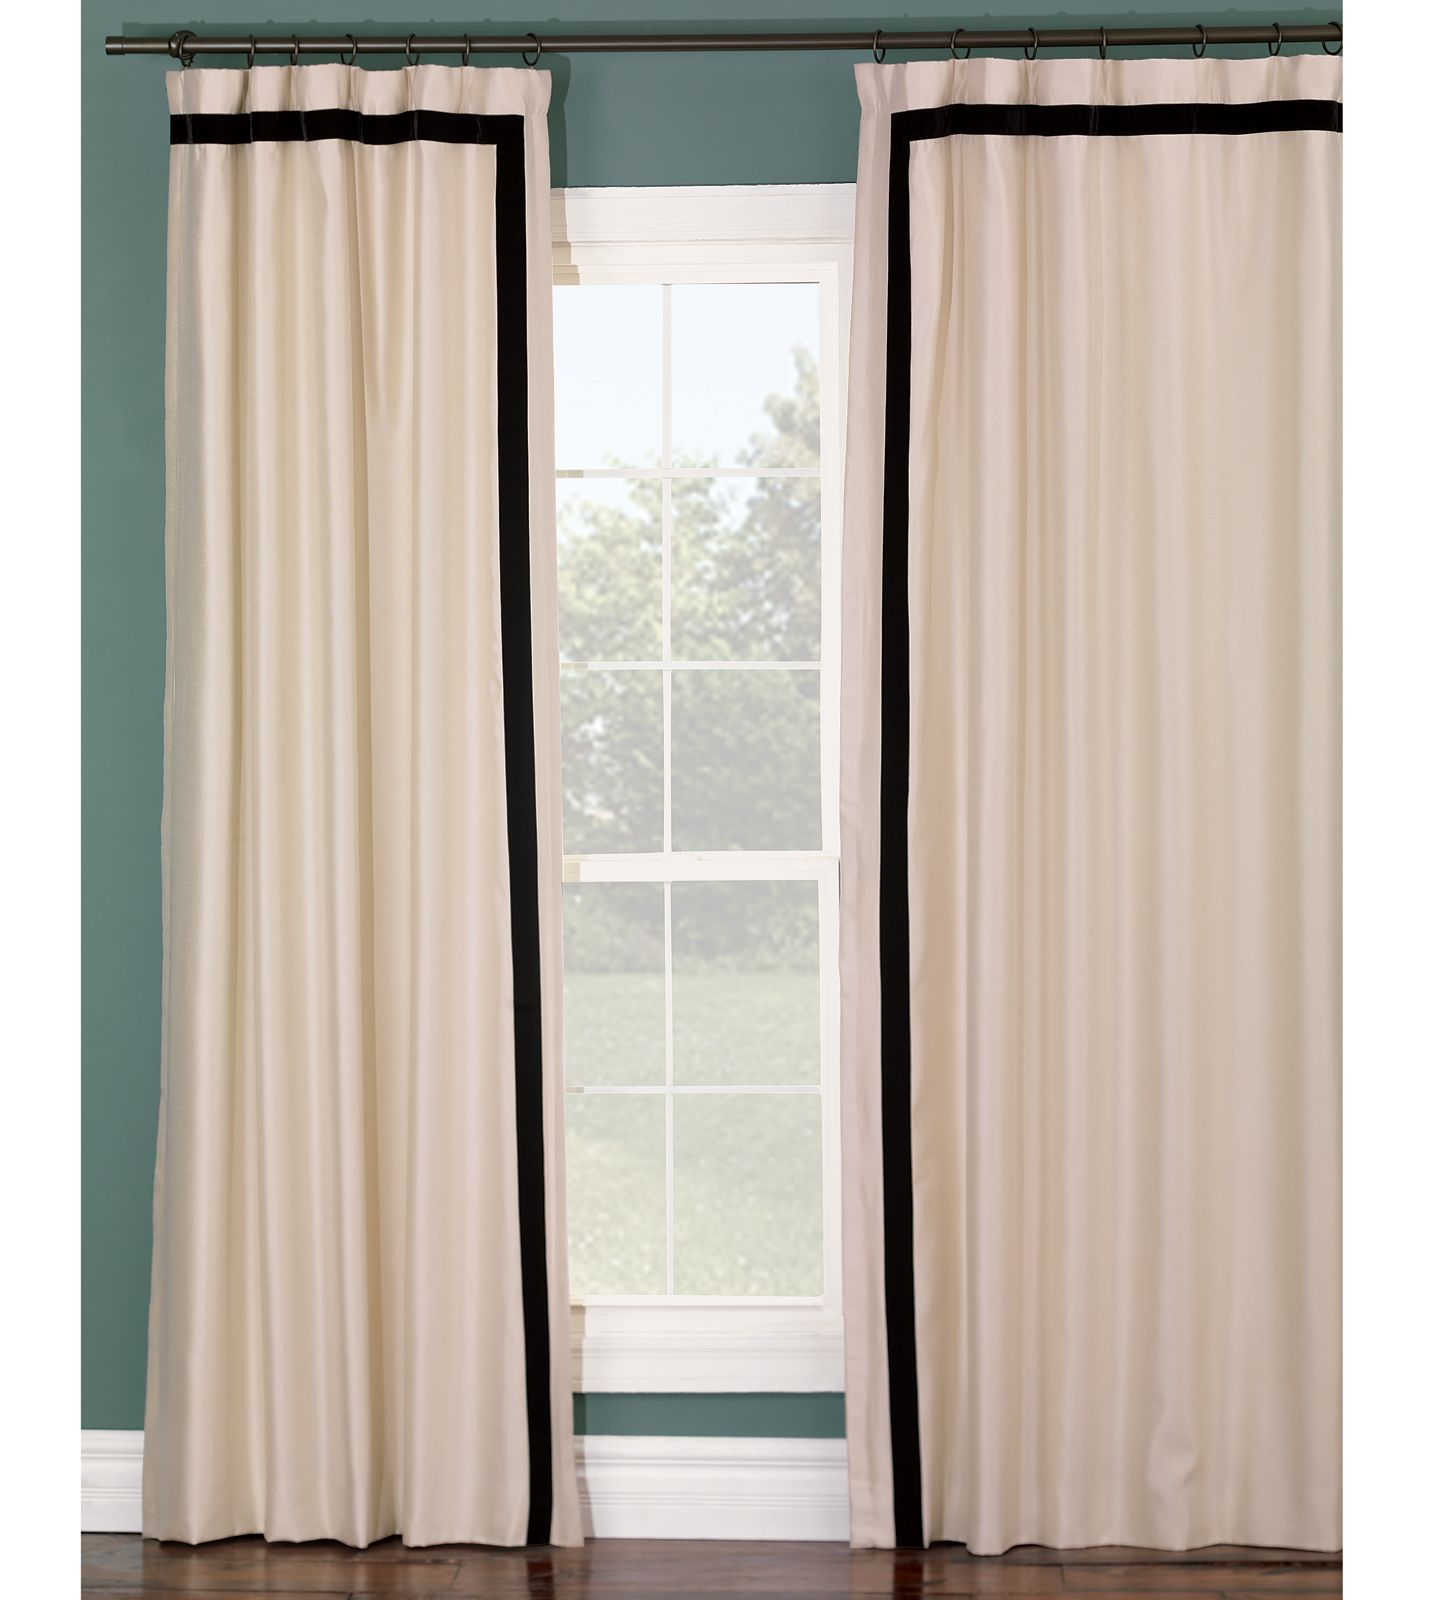 drapesivory sheer size pair curtains of and drapes full inspirations ivory image pairivory inchivory